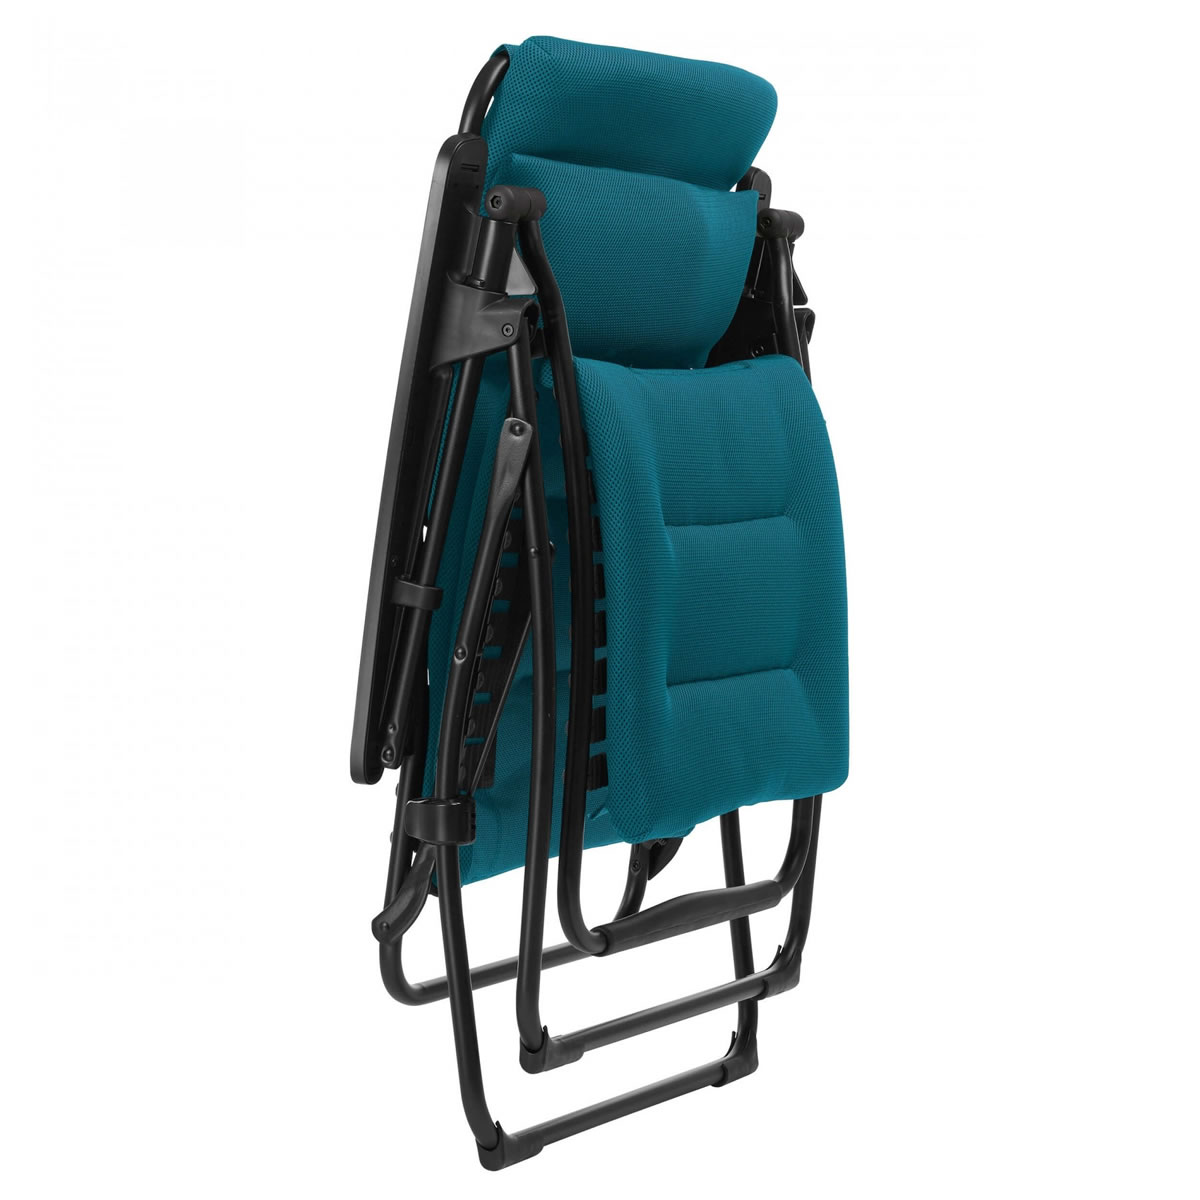 Extra image of Lafuma Futura XL Air Comfort Padded Recliner - Coral Blue